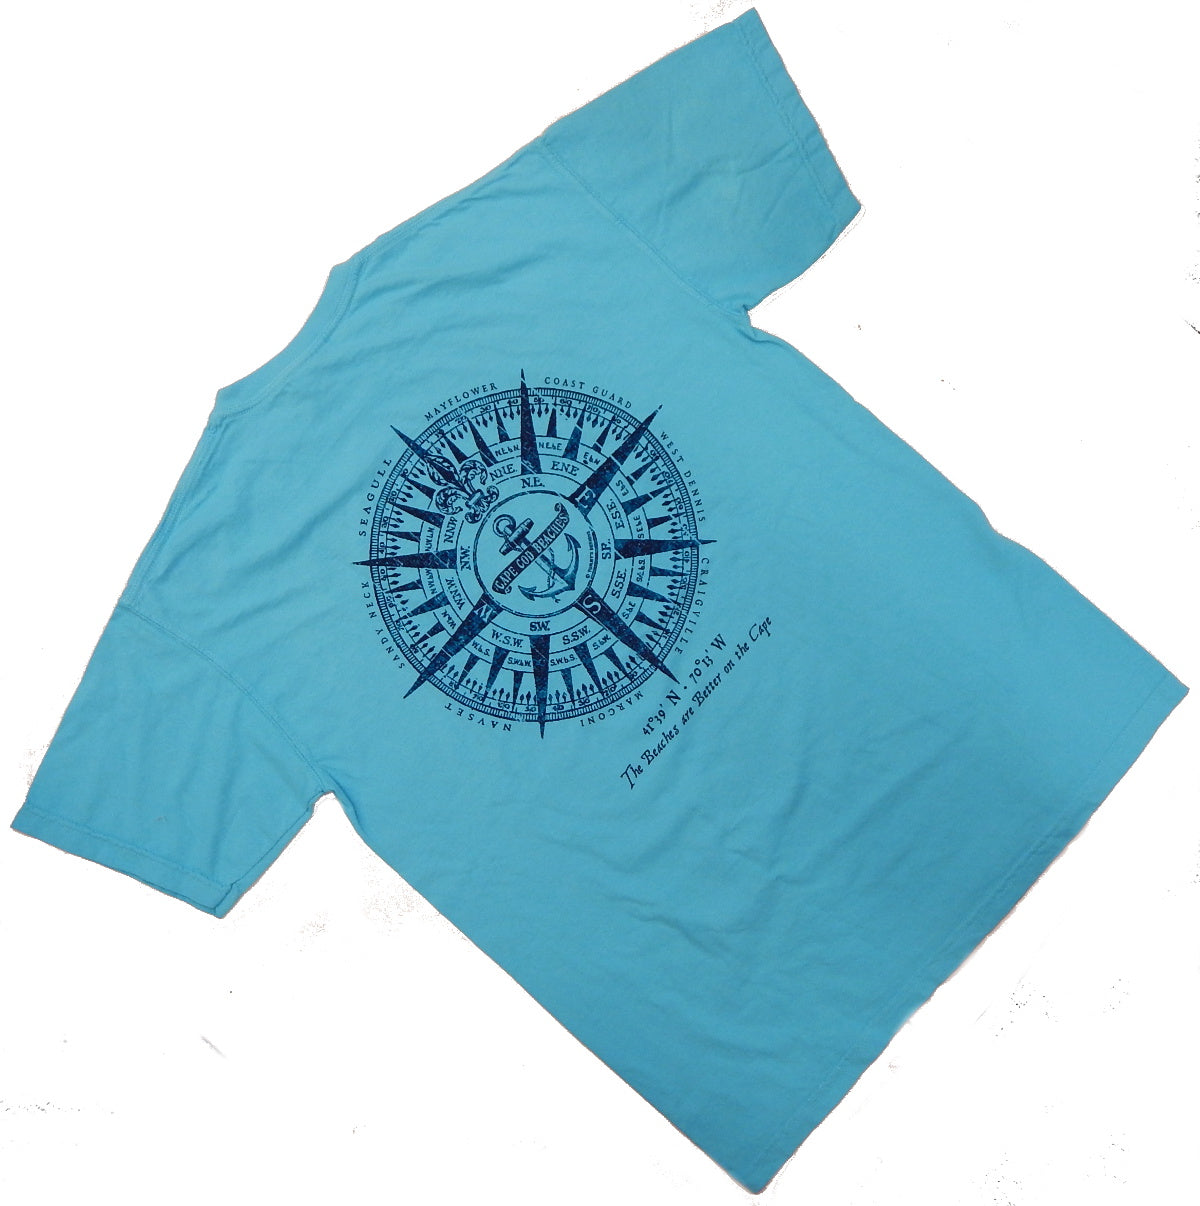 Beaches of Cape Cod<br>Pigment-Dyed Short Sleeve T-Shirt<br><b>NOW 20% OFF!</b><br>by Tommy's Designs